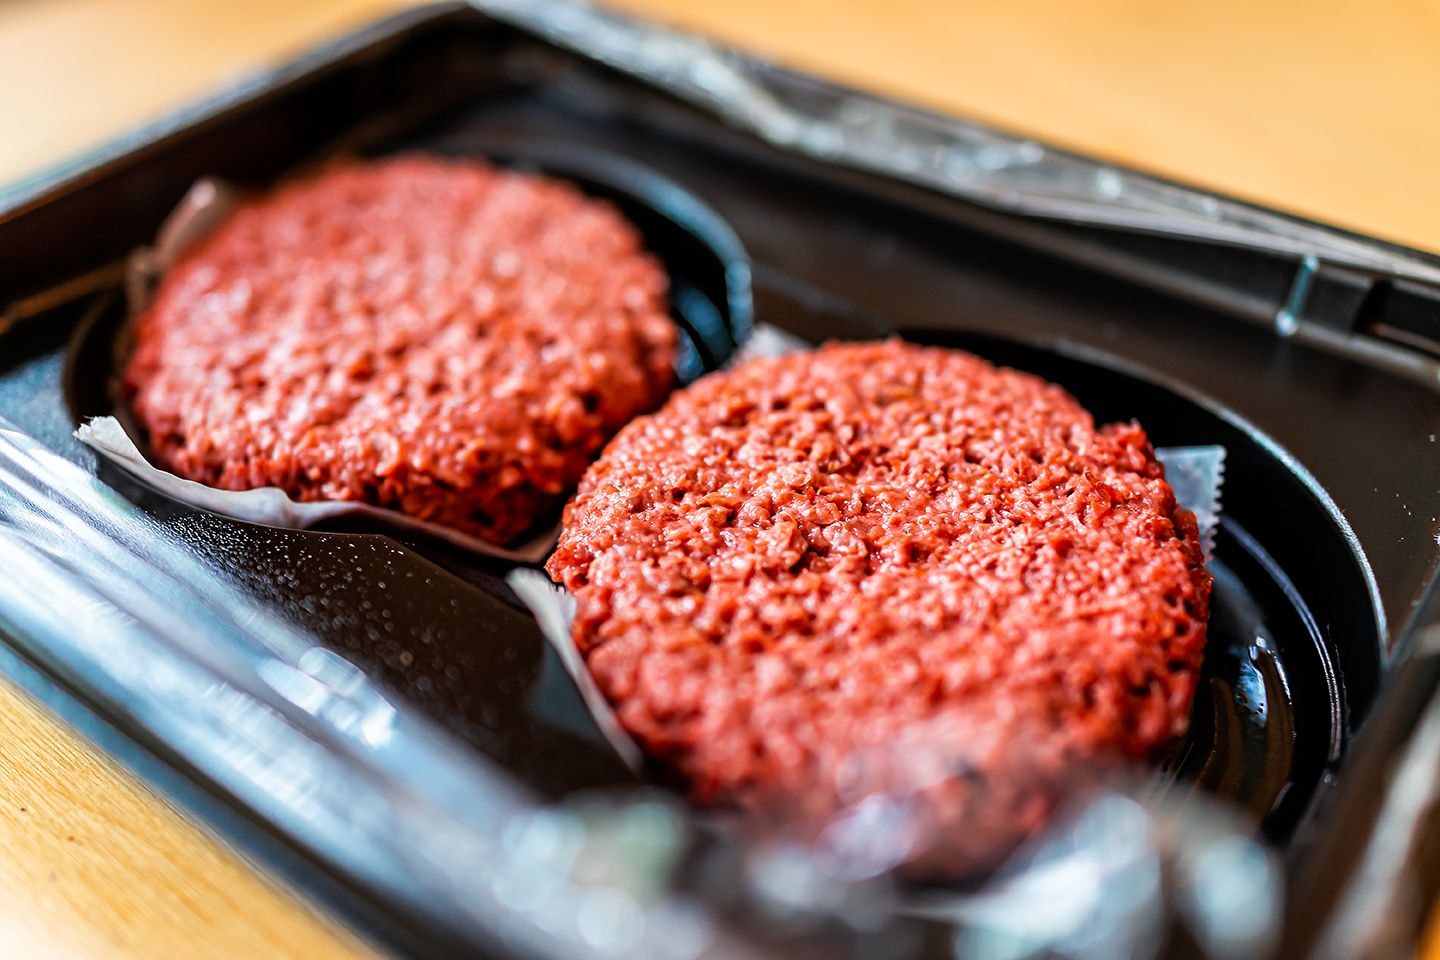 Plantbased meat lowers some cardiovascular risk factors